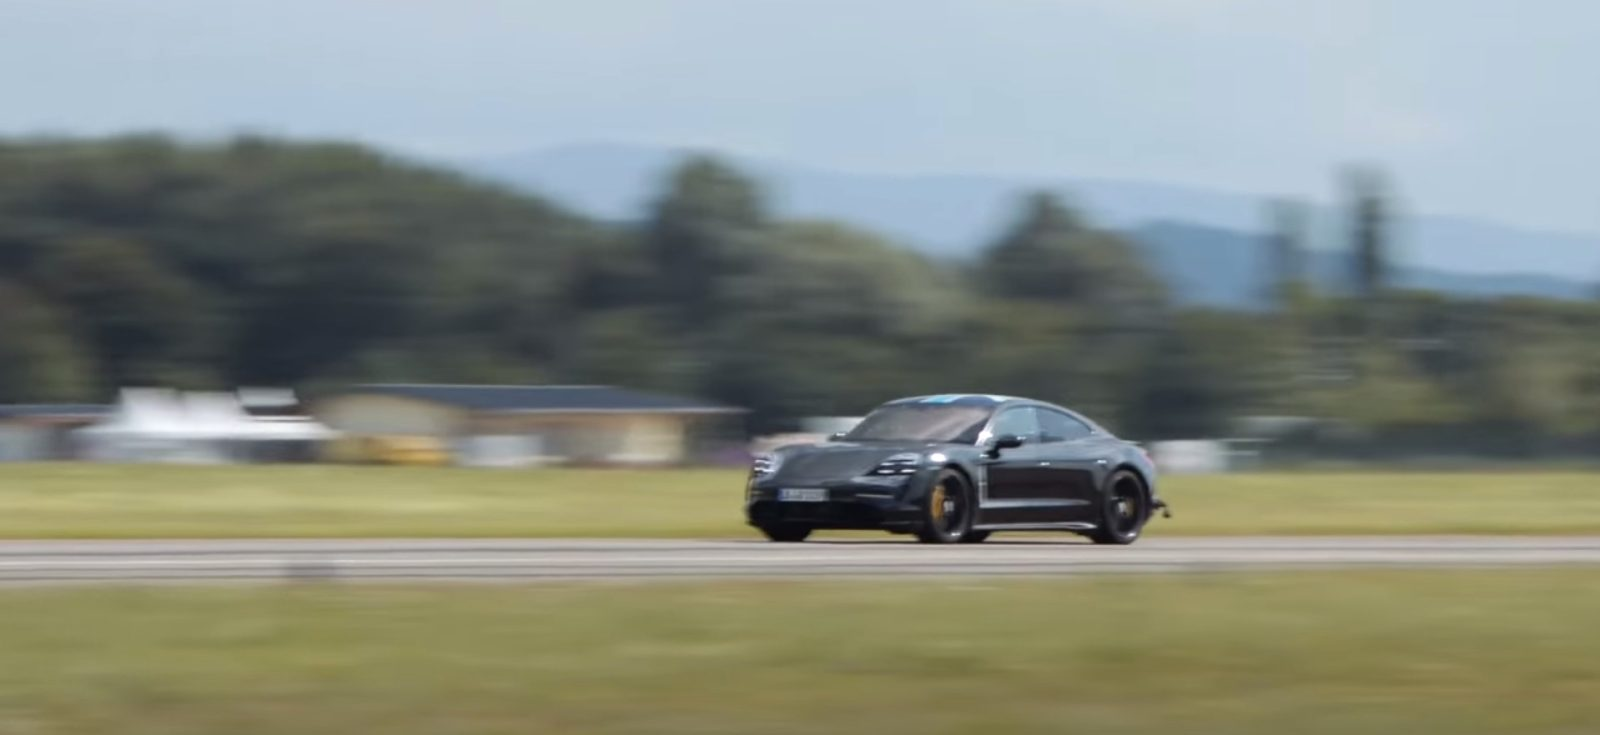 Watch Porsche Taycan perform 30 consecutive 0-124 mph launches